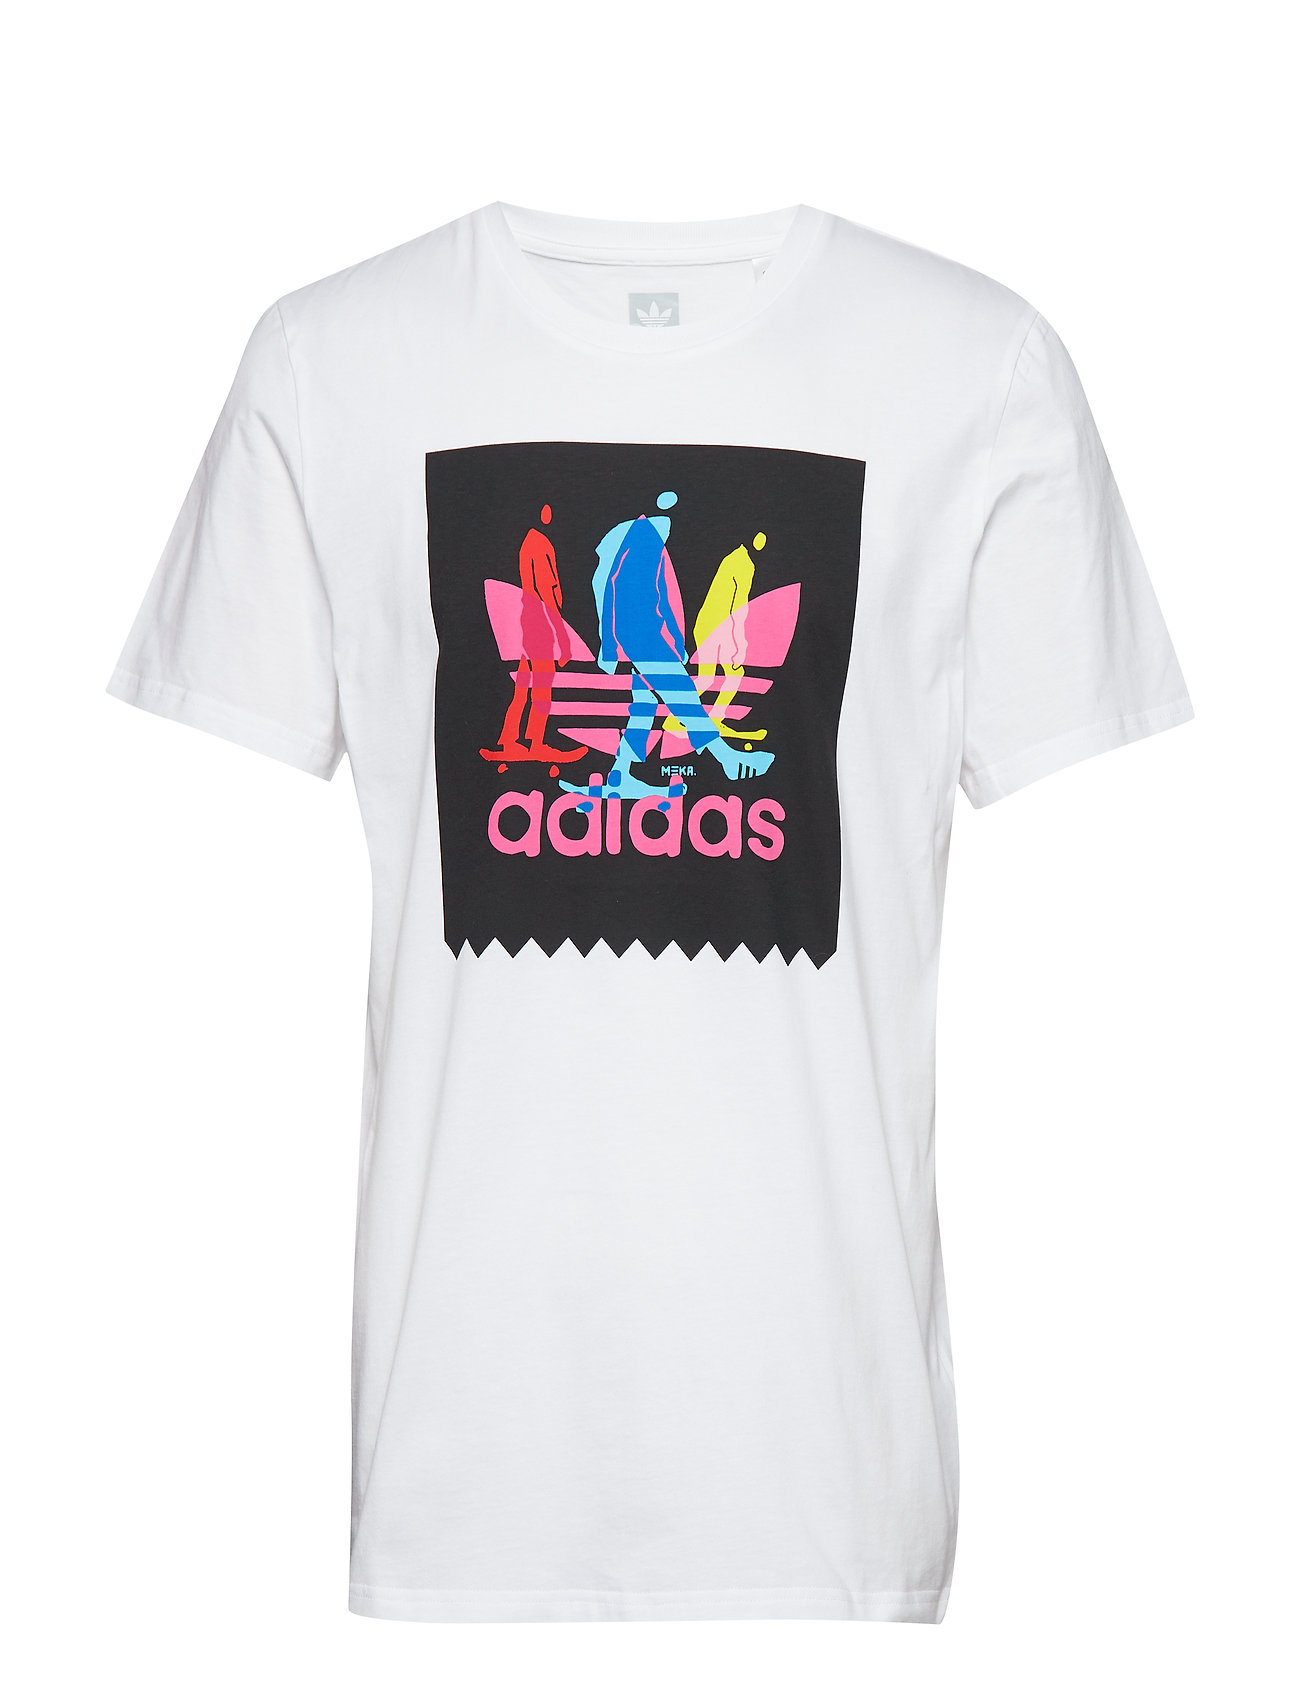 adidas Performance CARUTHERS BB T - WHITE